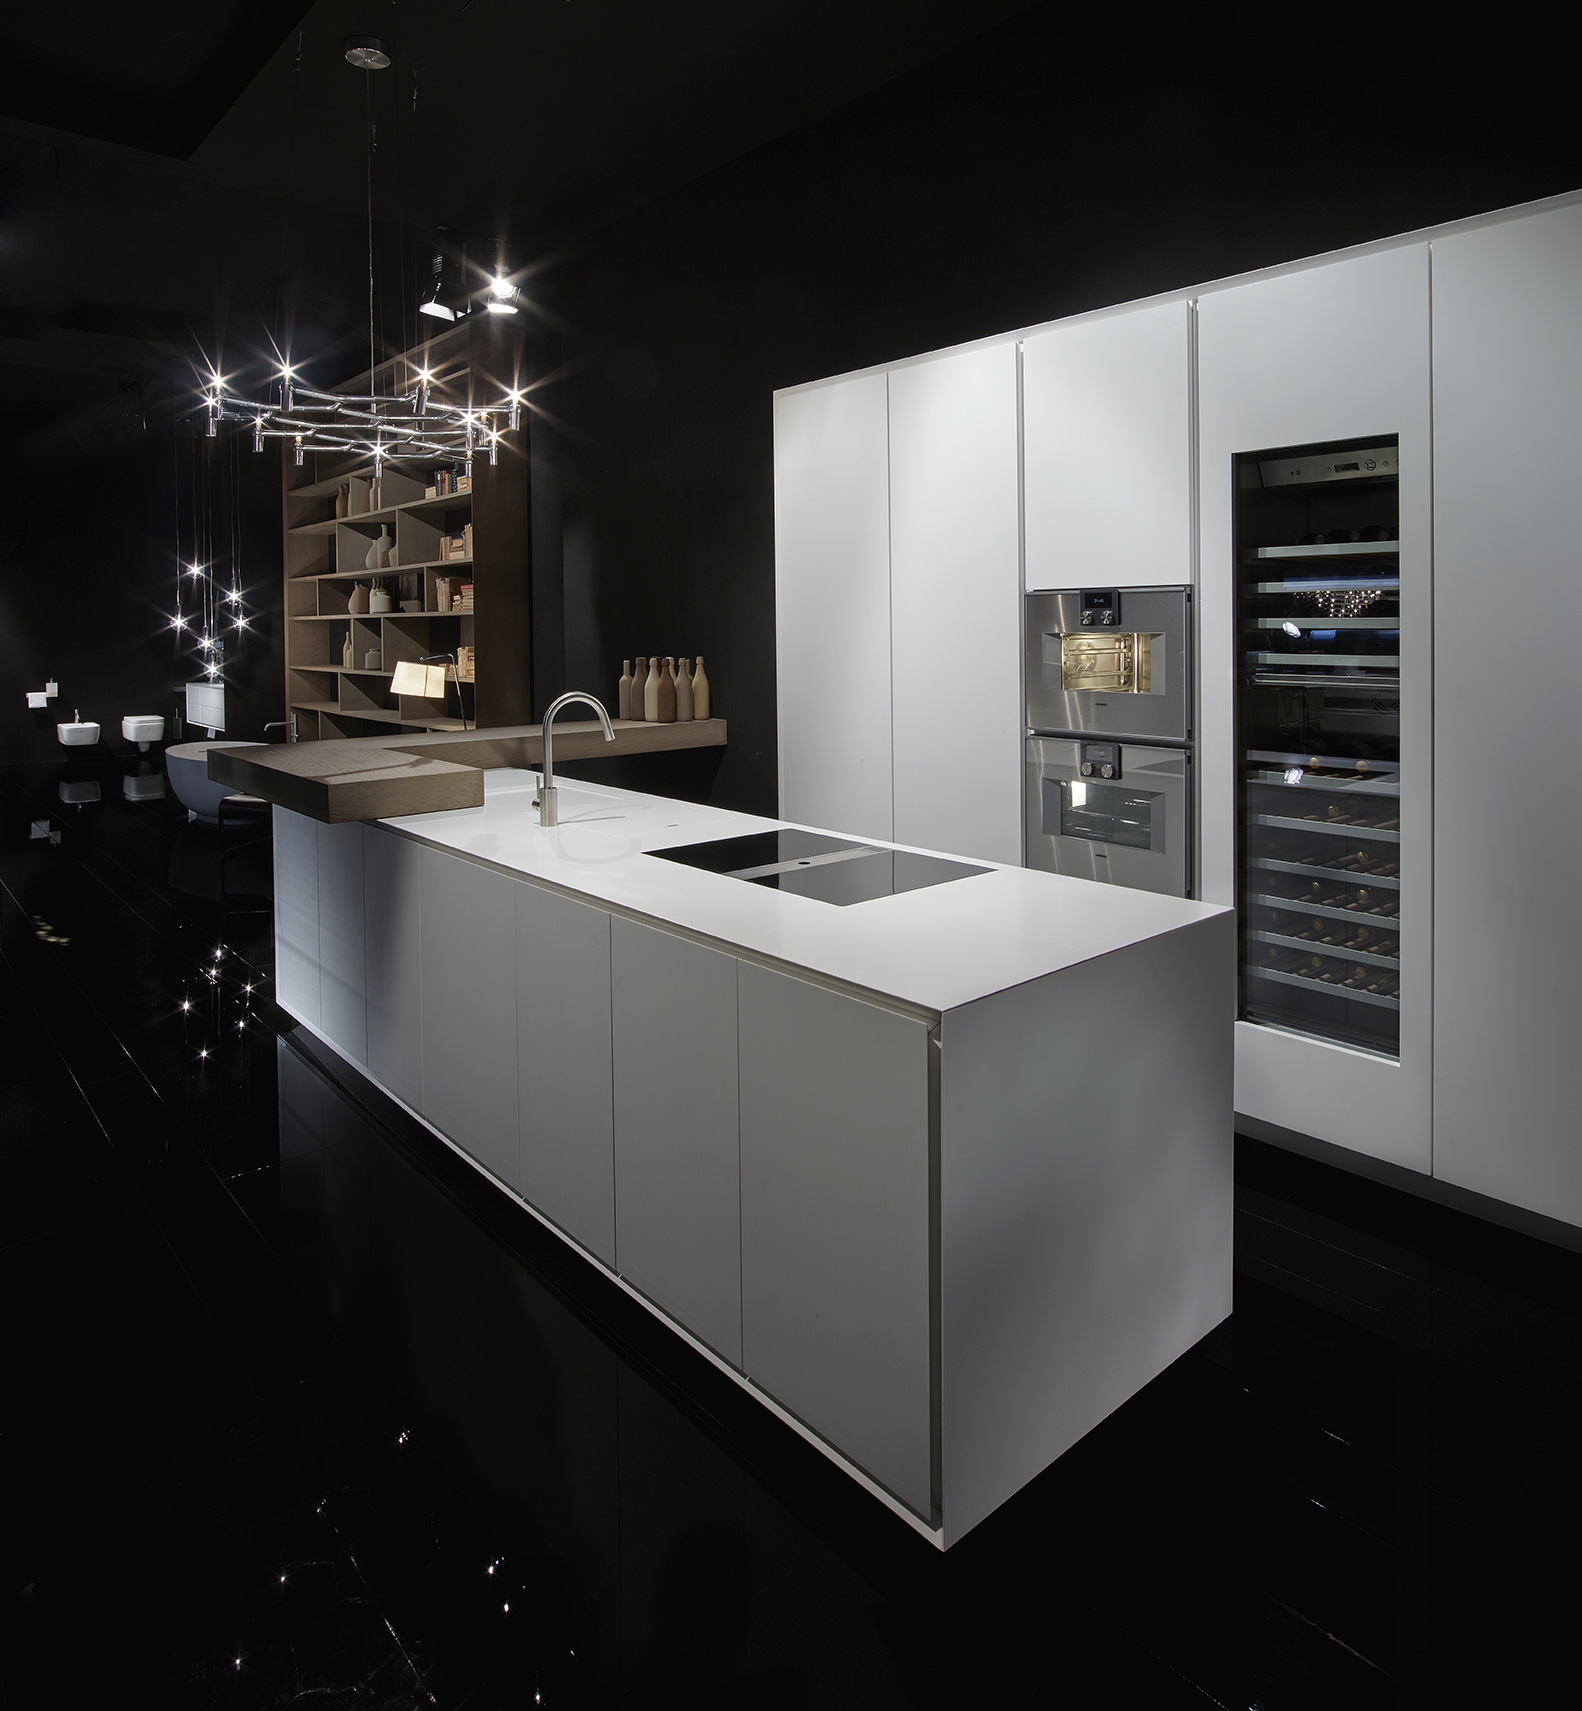 Kitchens and bathrooms direct - Rifra An Italian Company Which Has Branded Itself As Kitchens And Baths Direct From Milano